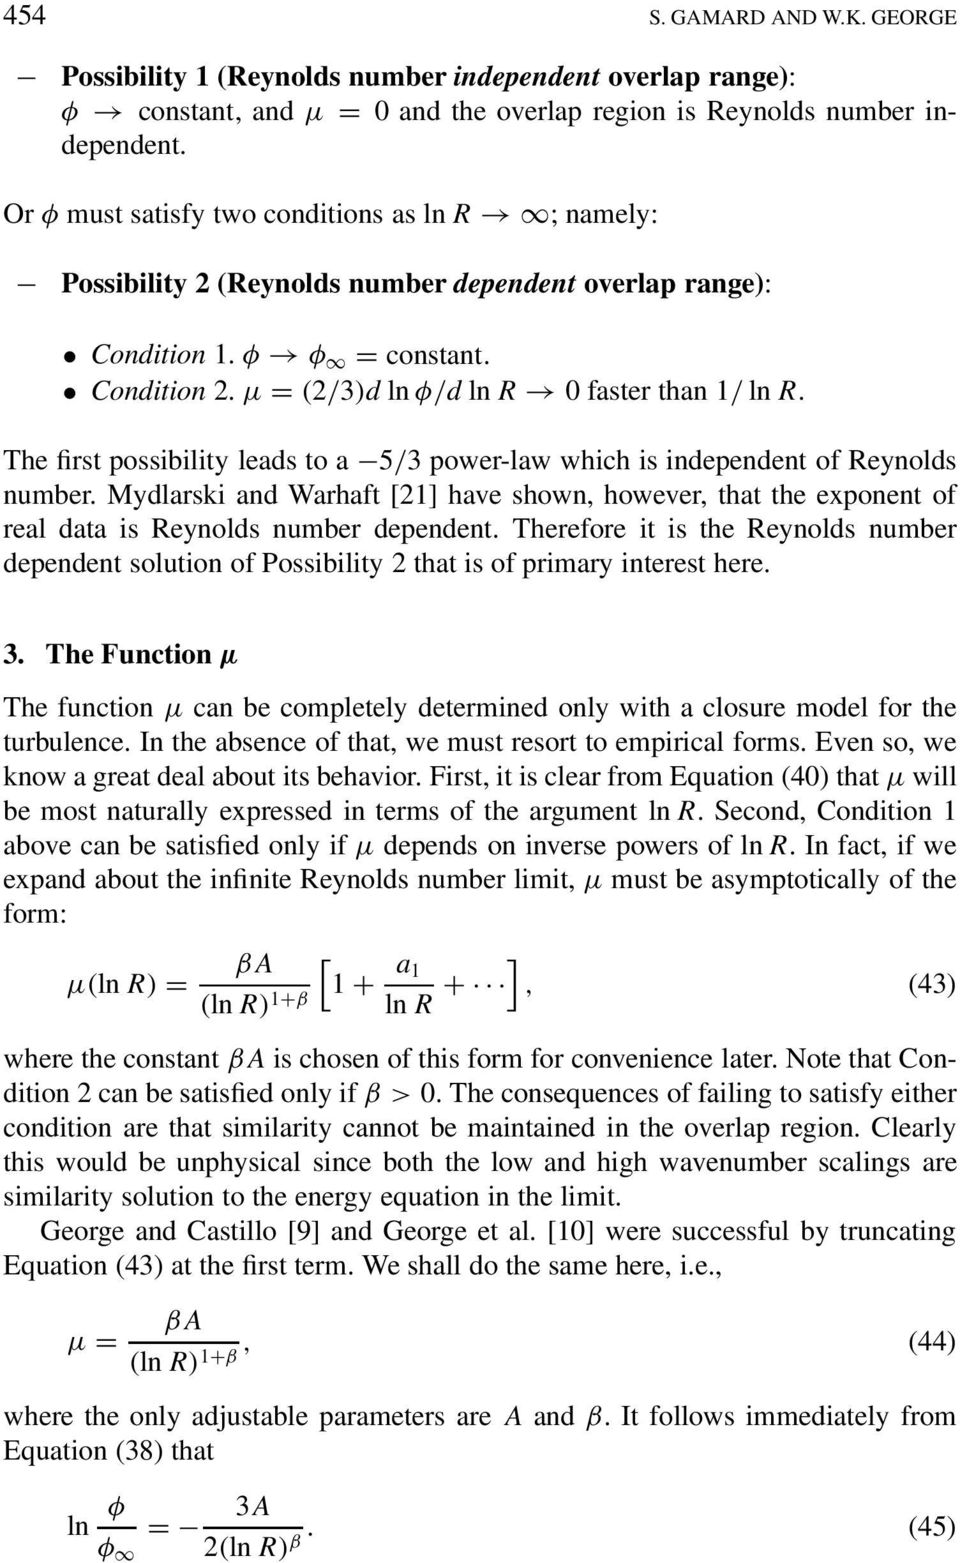 The first possibility leads to a 5/3 power-law which is independent of Reynolds number. Mydlarski and Warhaft [21] have shown, however, that the exponent of real data is Reynolds number dependent.